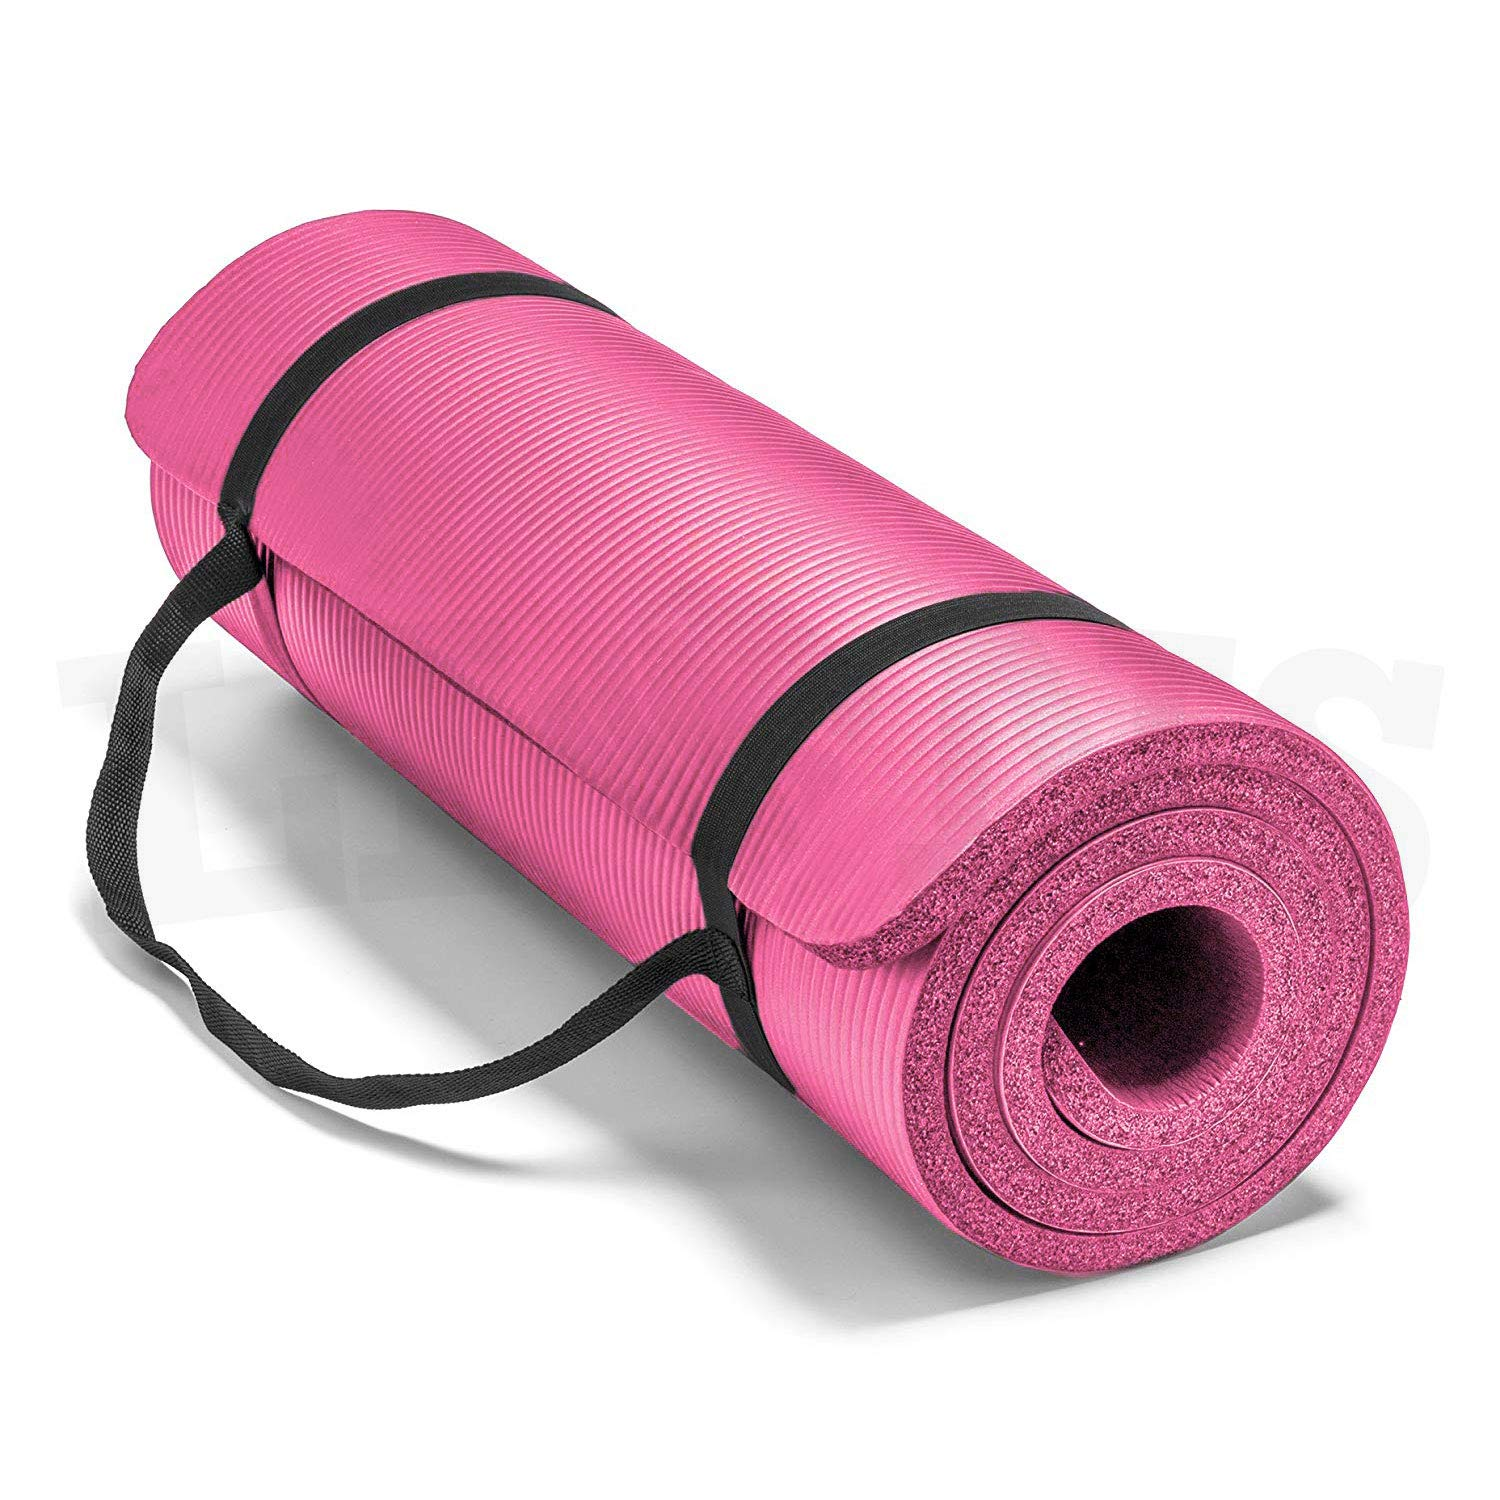 Lions Extra Thick Large Excercise Yoga Gym Mat Non Slip Foam Padded Camping Excercise Gymnastic Pilates Mats With Carry Handles